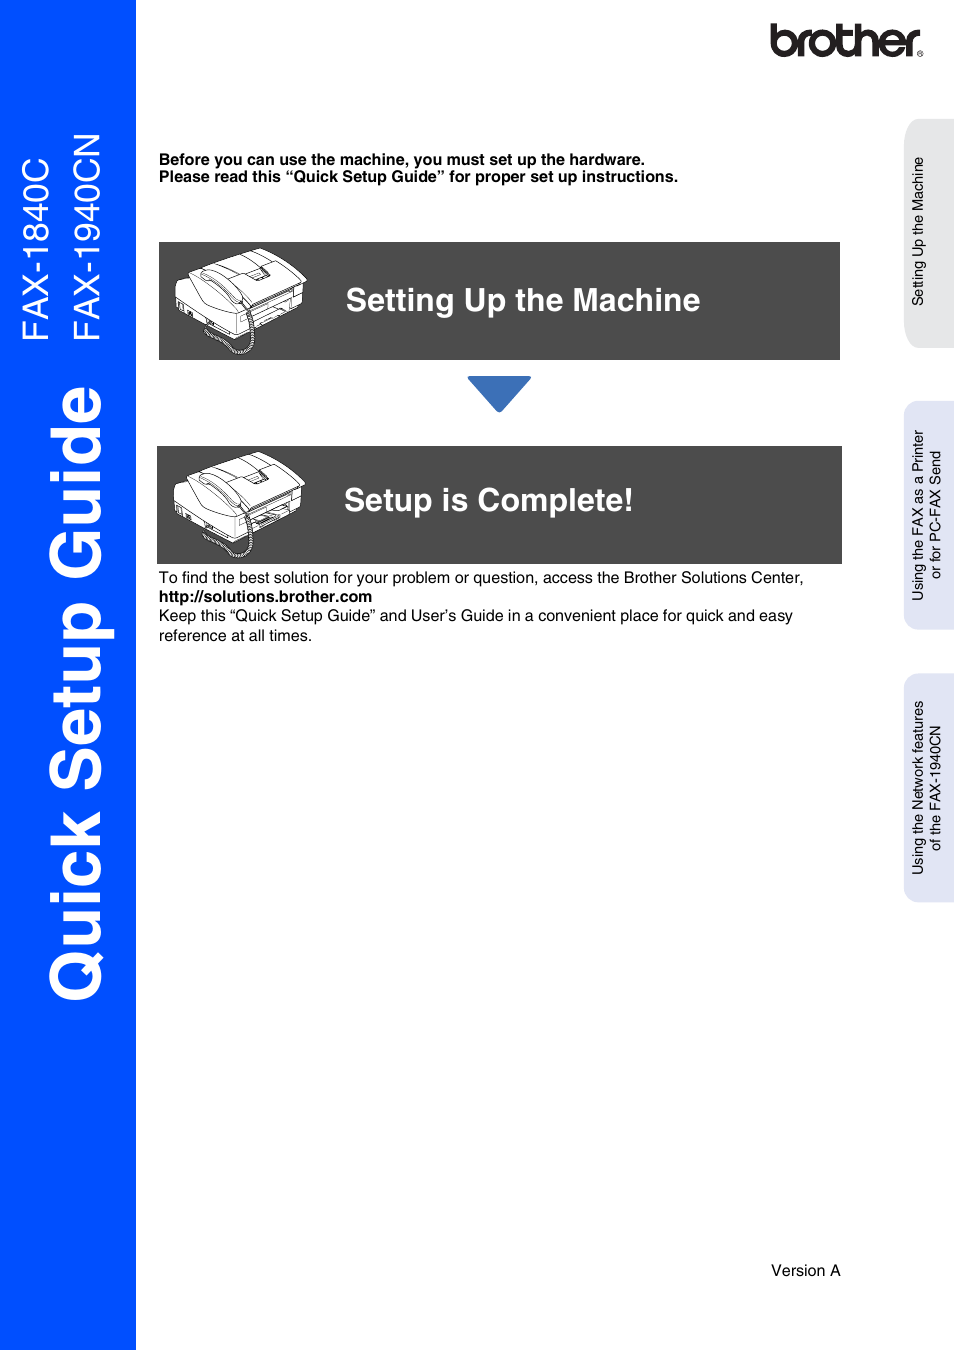 brother fax 1940cn user manual 18 pages also for fax 1840c rh manualsdir com brother quick setup guide mfc l2740dw brother quick setup guide mfc-j430w